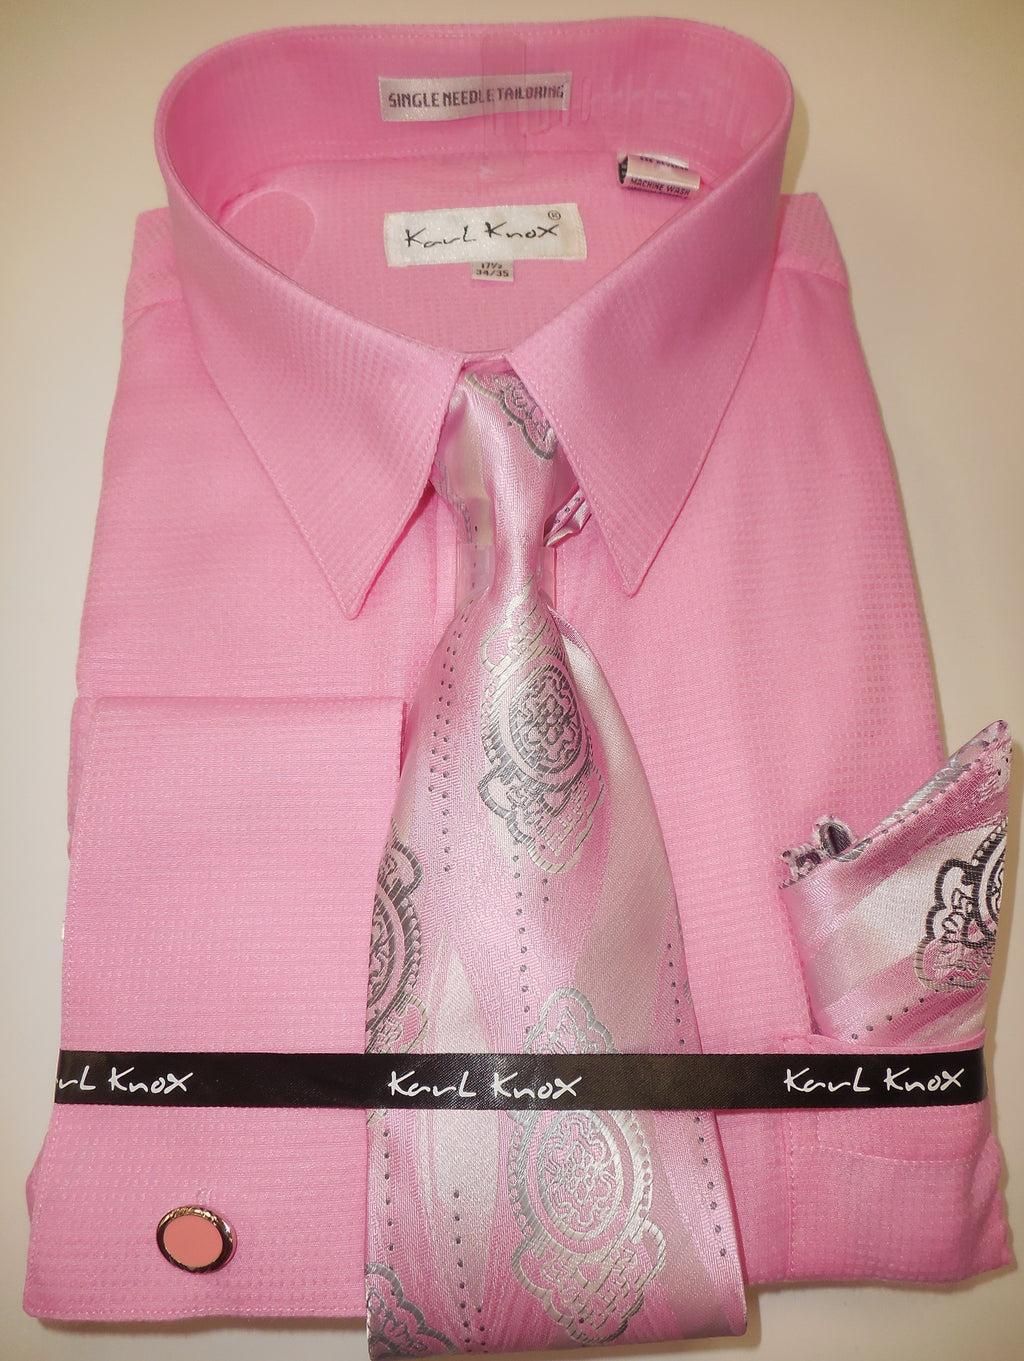 Mens Baby Pink Pointed Collar French Cuff Dress Shirt + Tie Set Karl Knox 4402 S